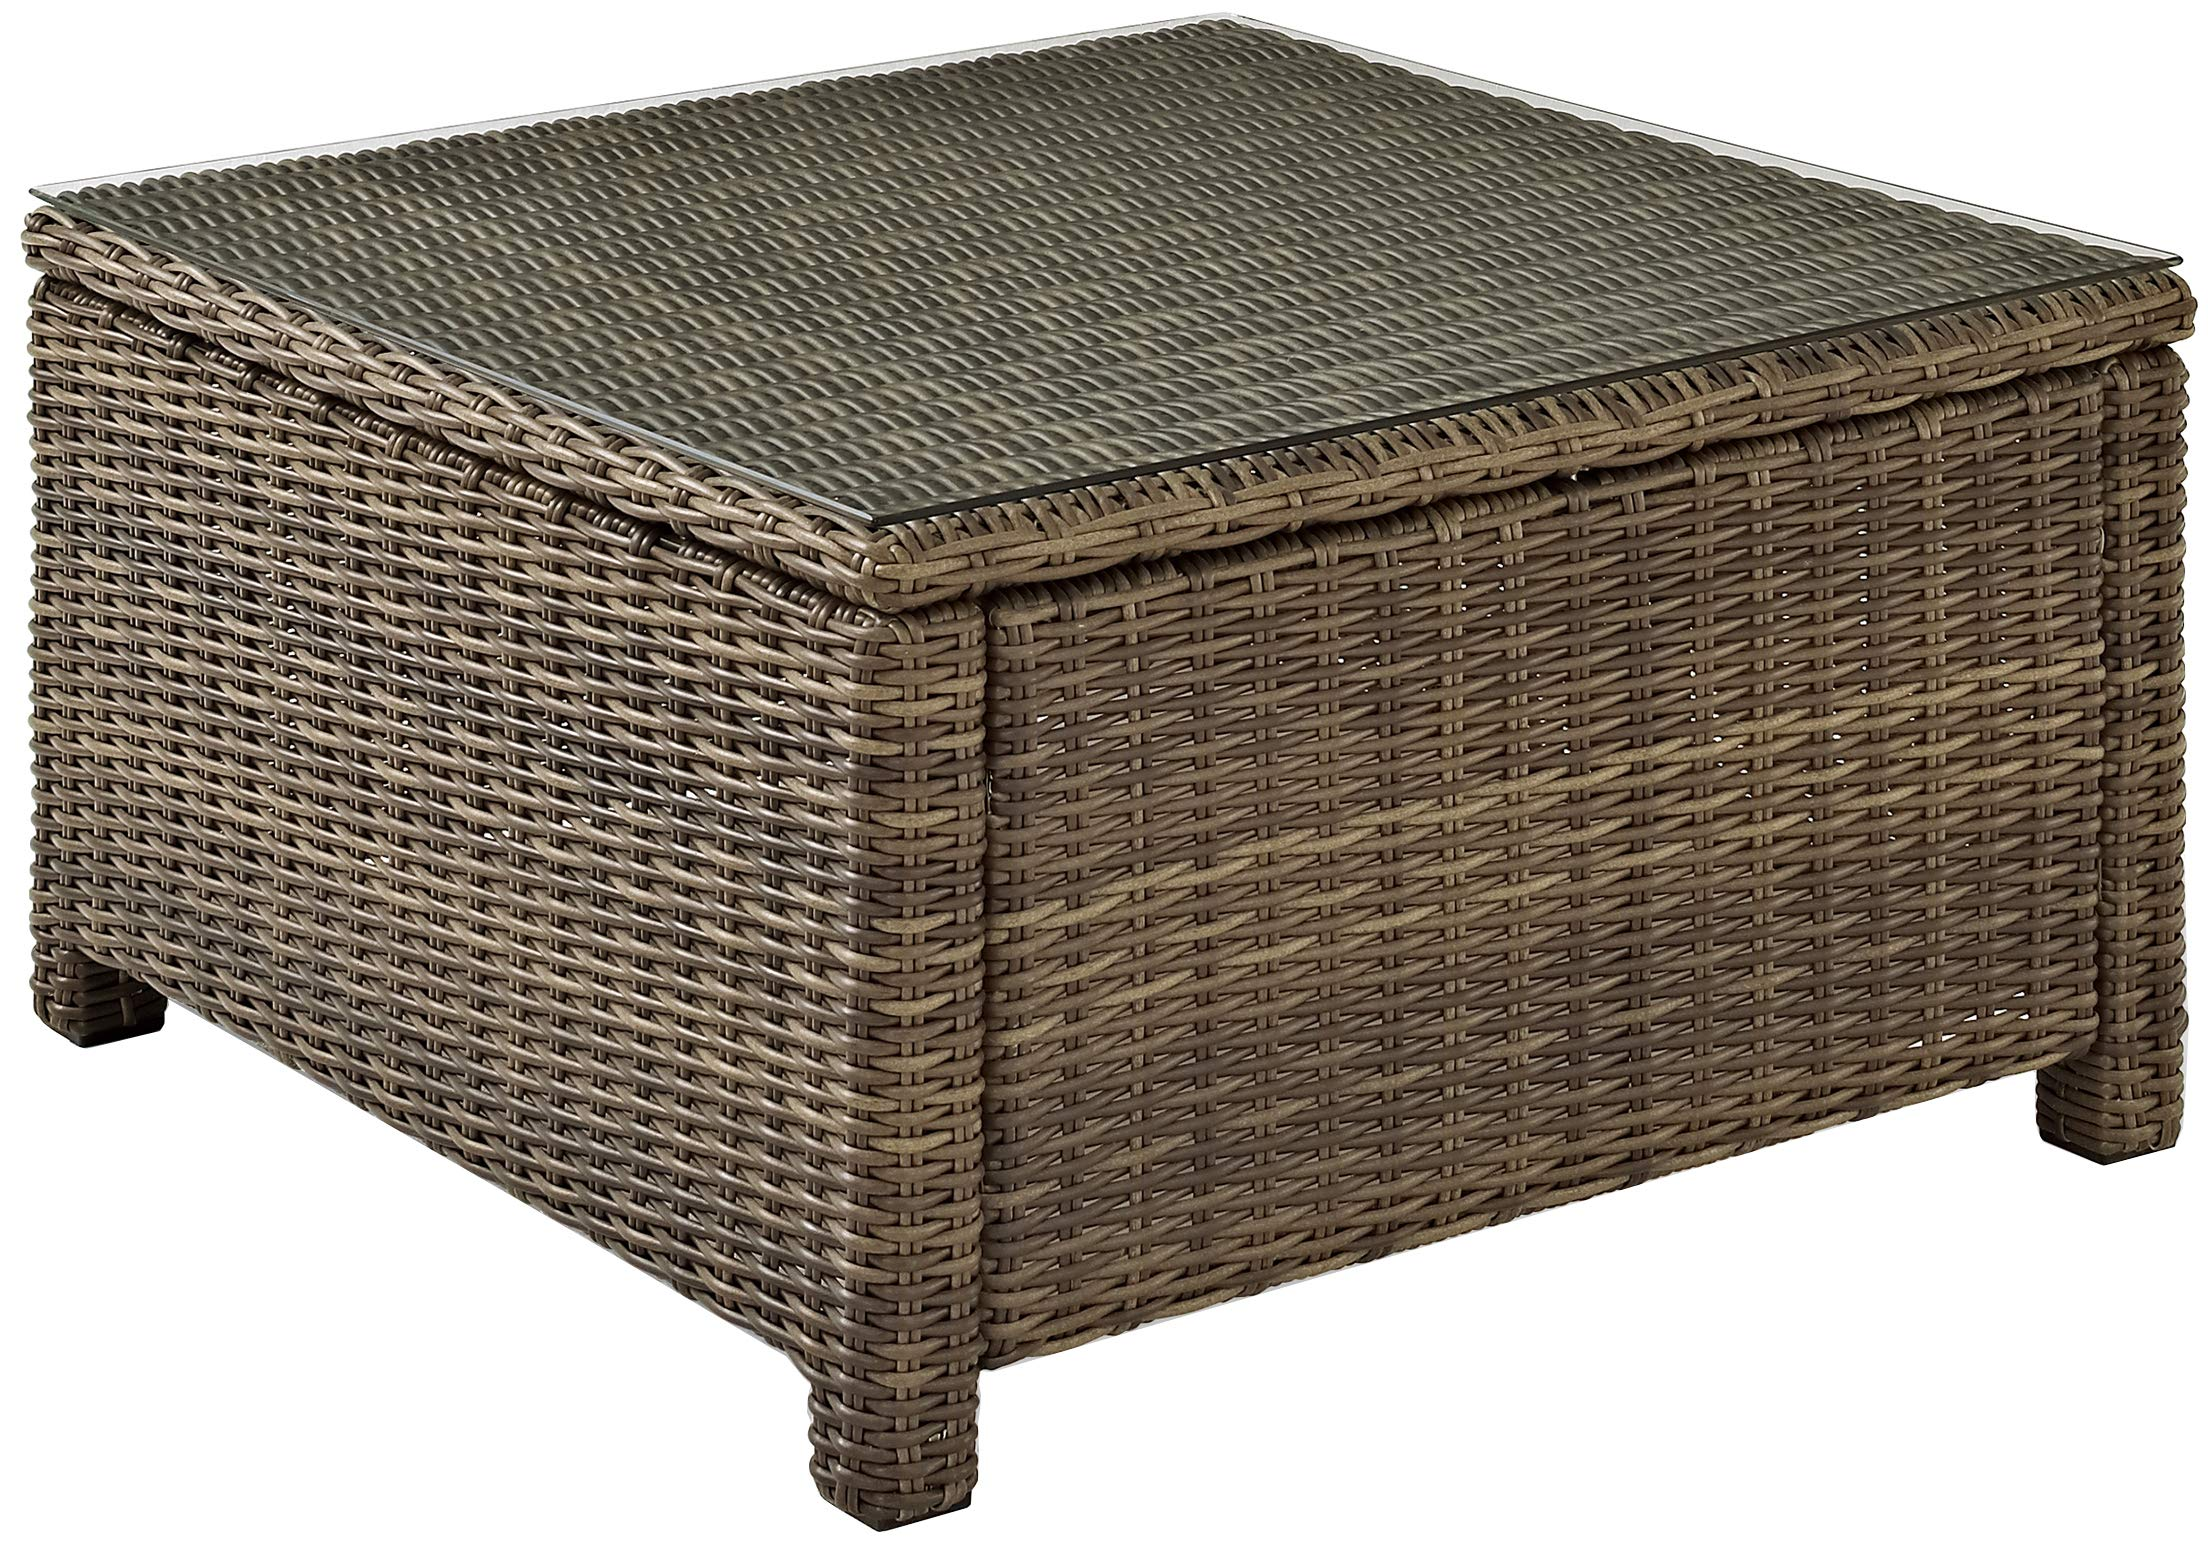 Crosley Furniture Bradenton Outdoor Wicker Sectional Coffee Table with Glass Top - Weathered Brown